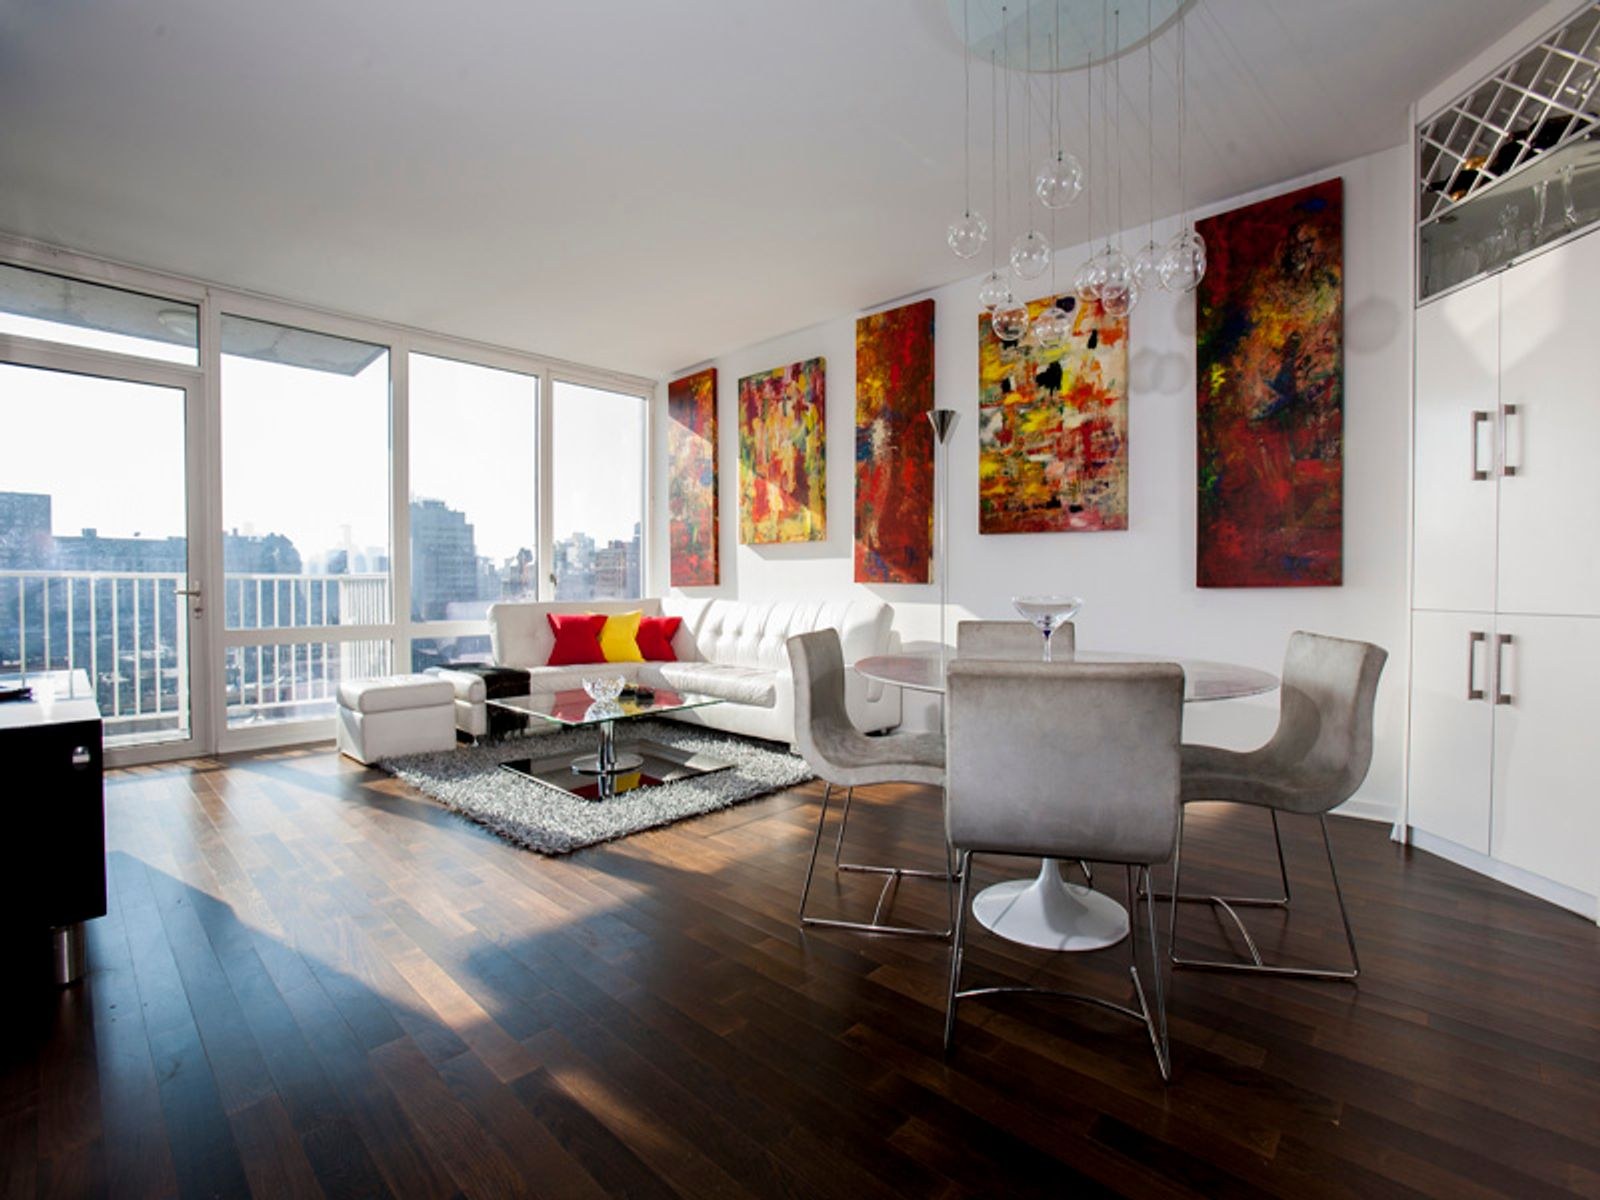 Phillipe Starck Gramercy, New York NY Condominium - New York City Real Estate